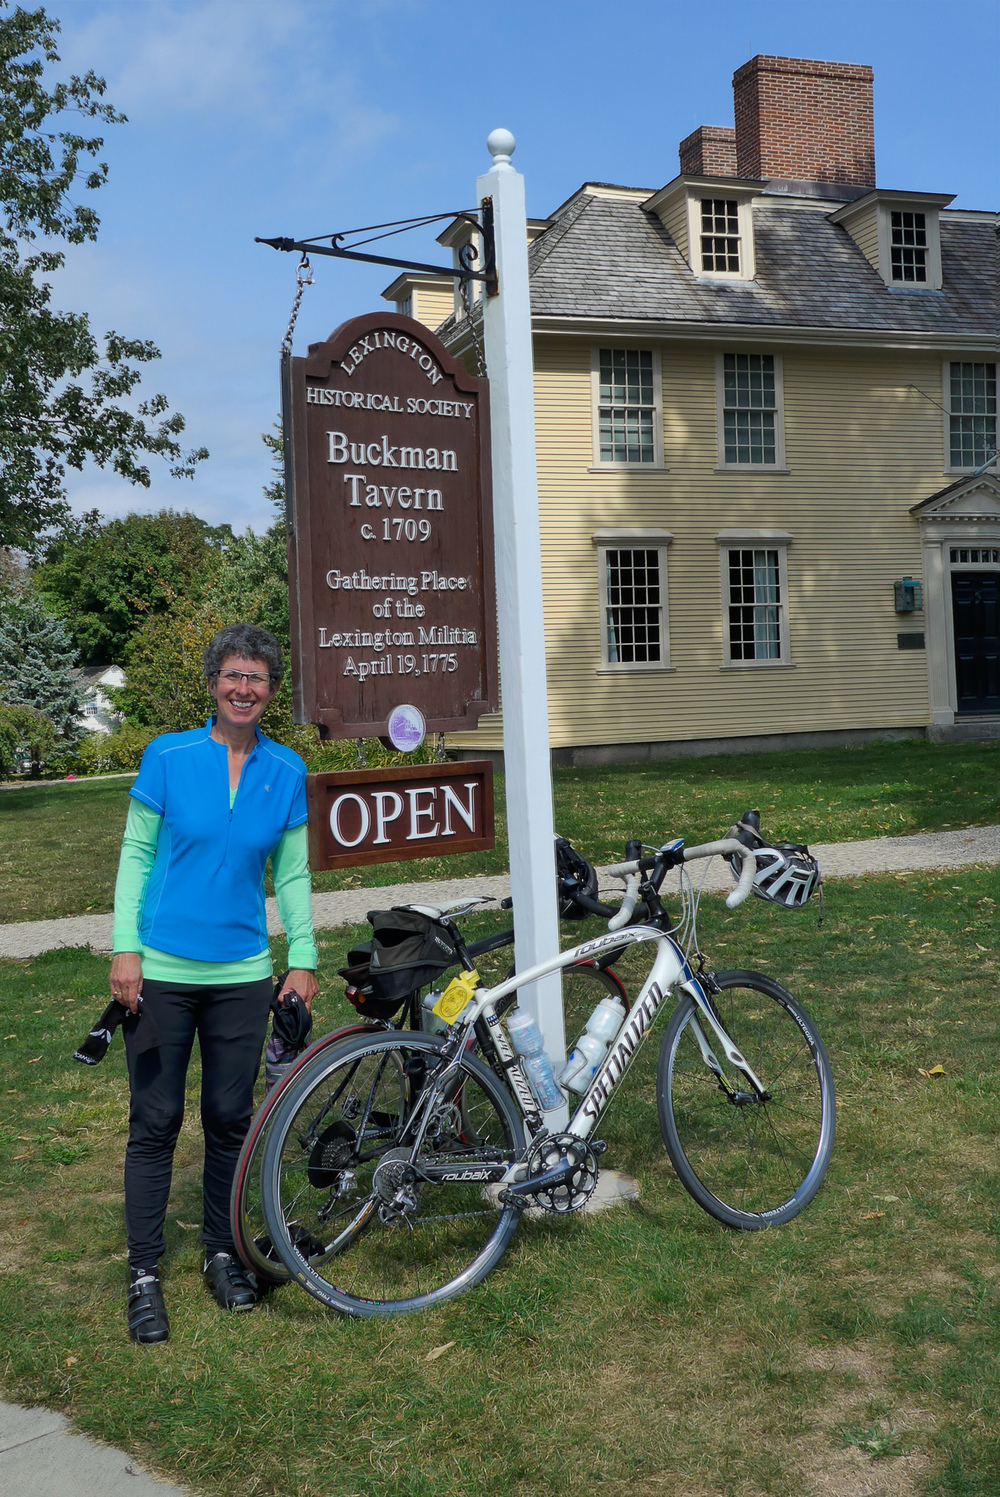 2014 rider Linda Furlani at the Buckman Tavern in Lexington